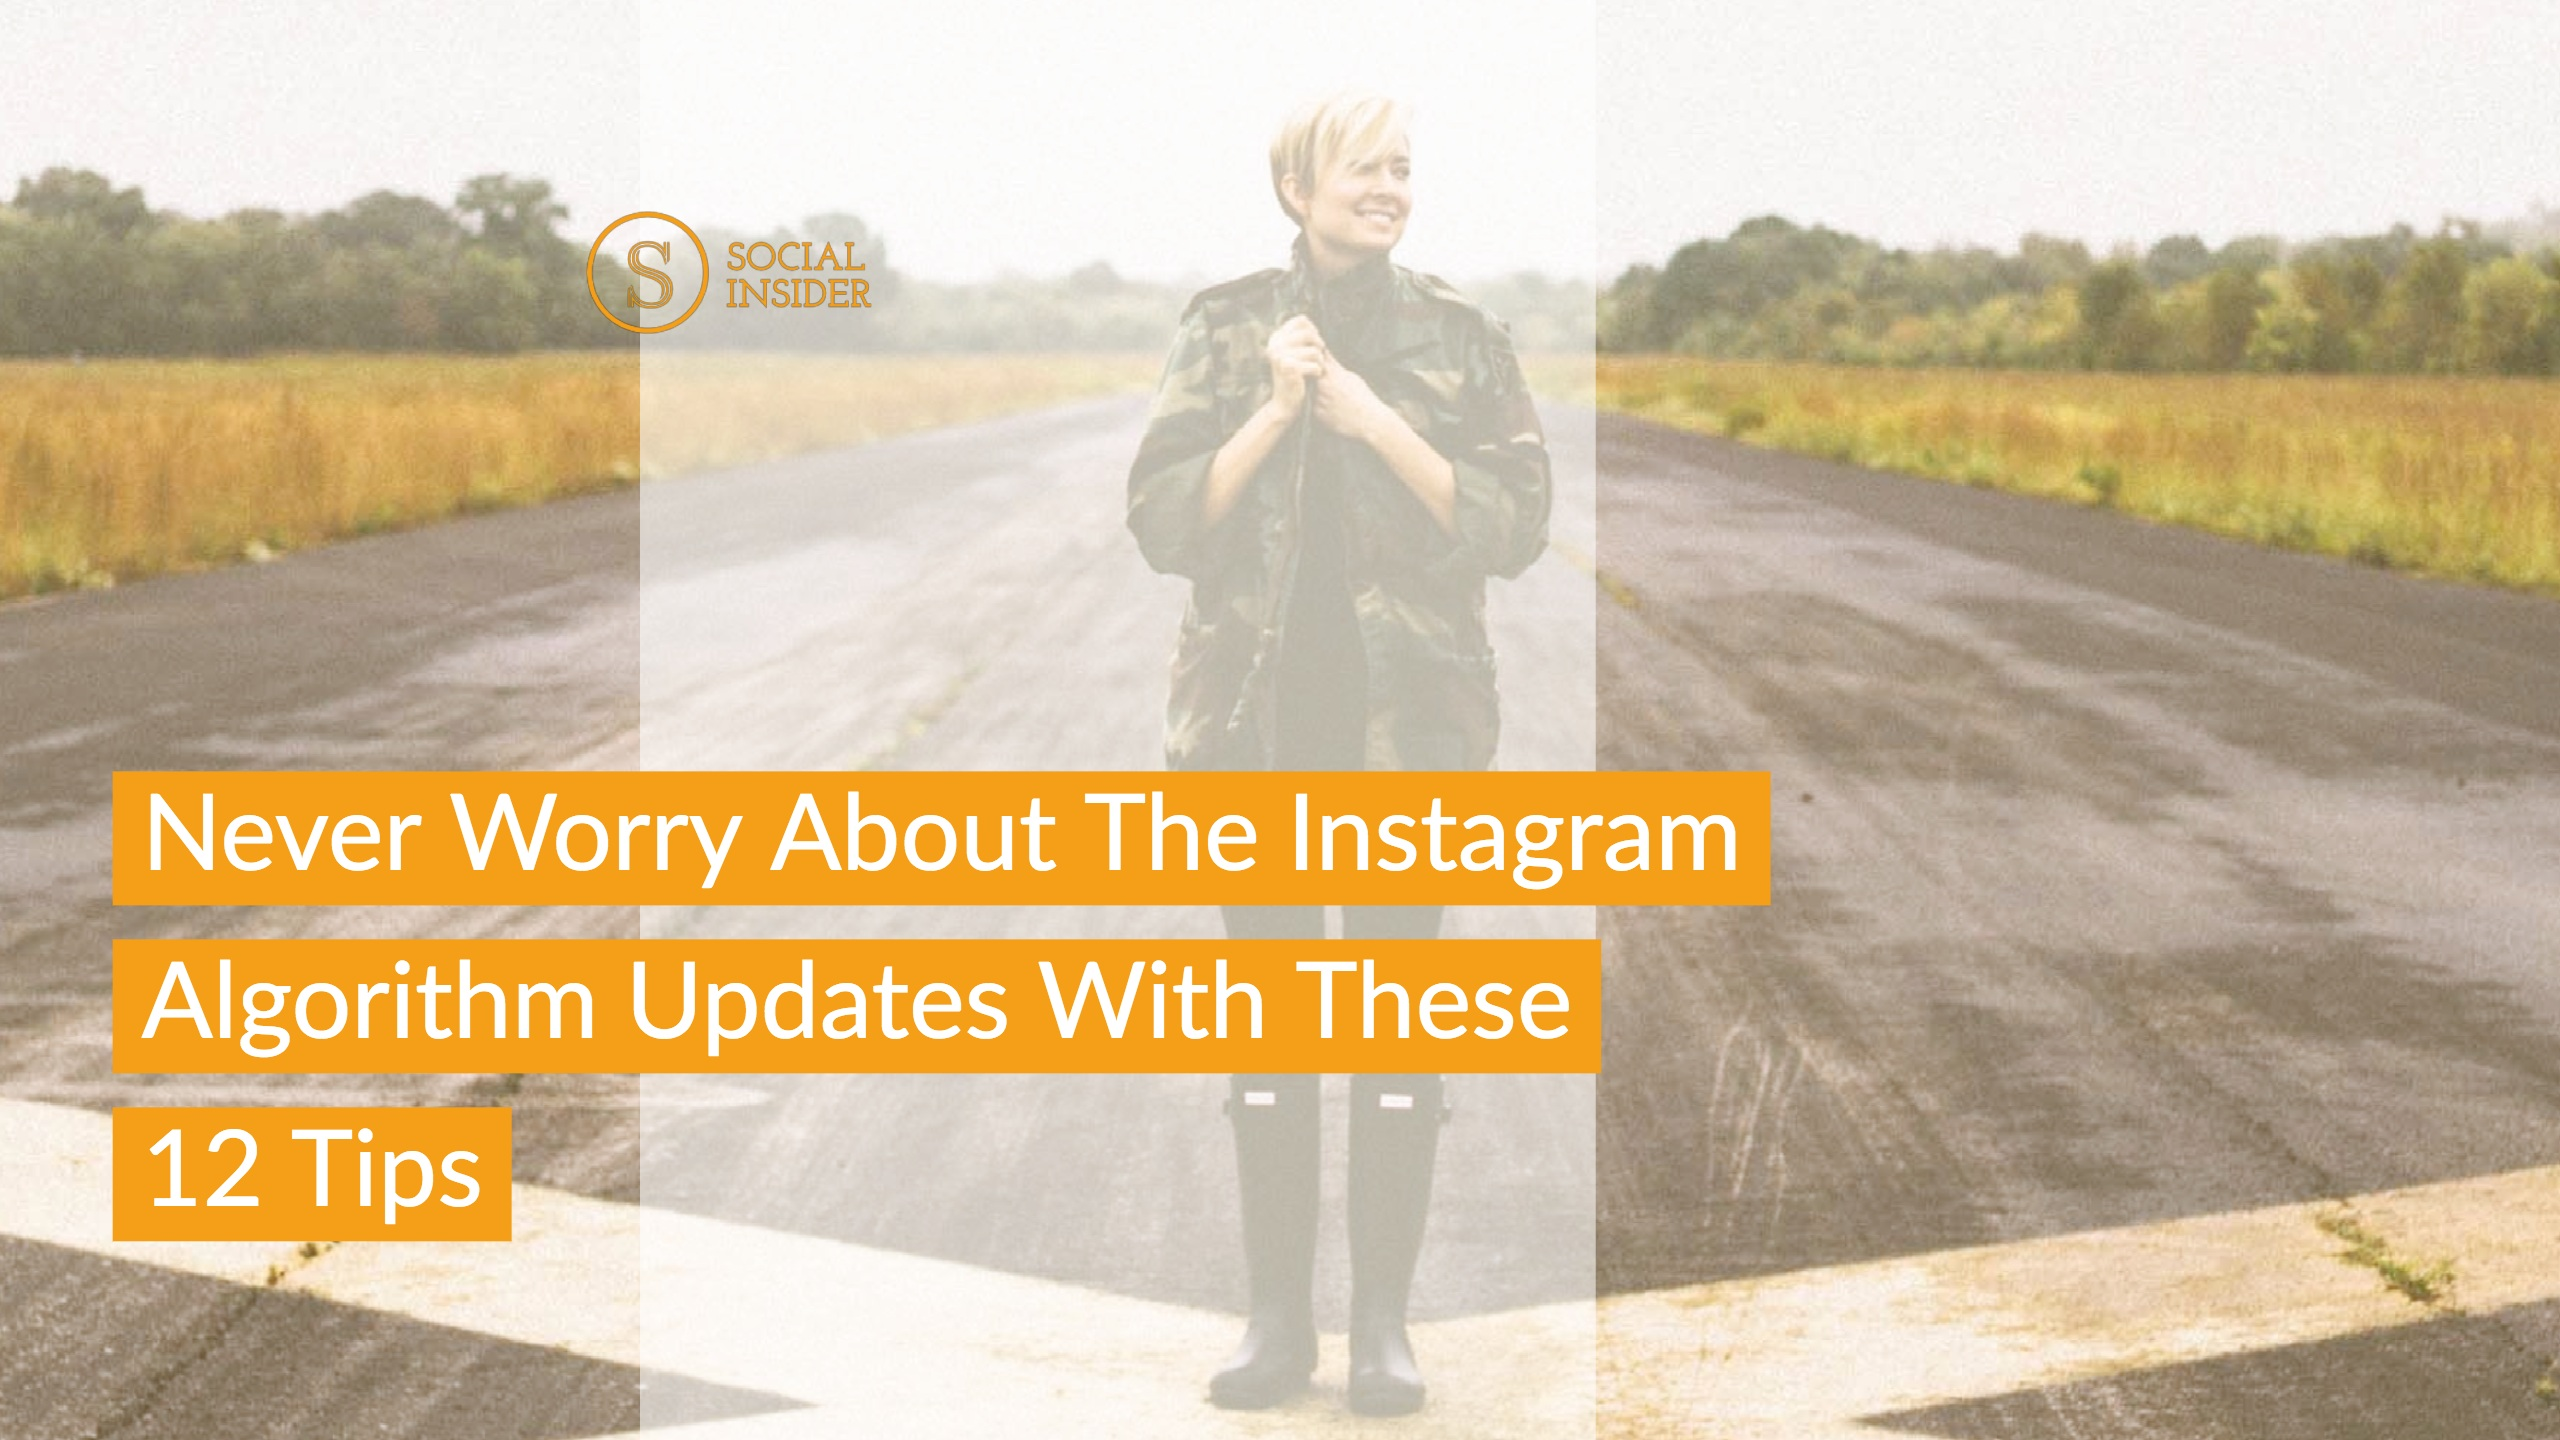 Never Worry About The Instagram Algorithm Updates With